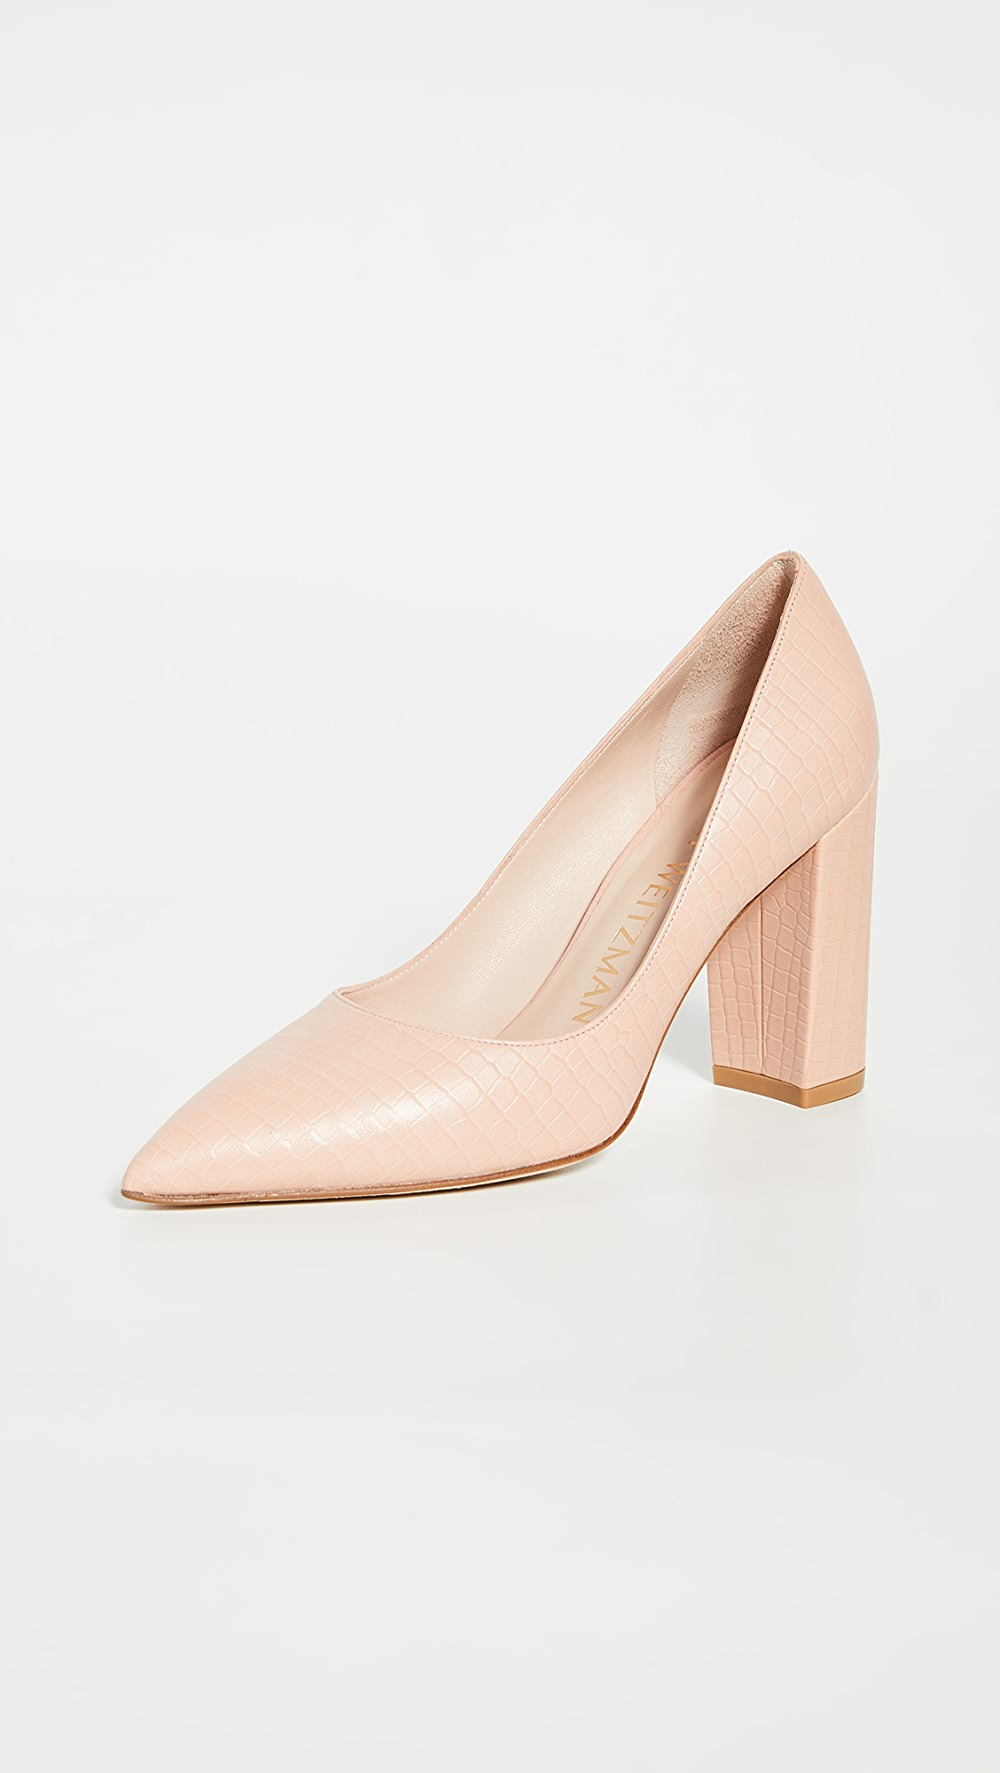 Beautiful Stuart Weitzman - Laney Pumps 95mm To Clear Out Annoyance And Quench Thirst